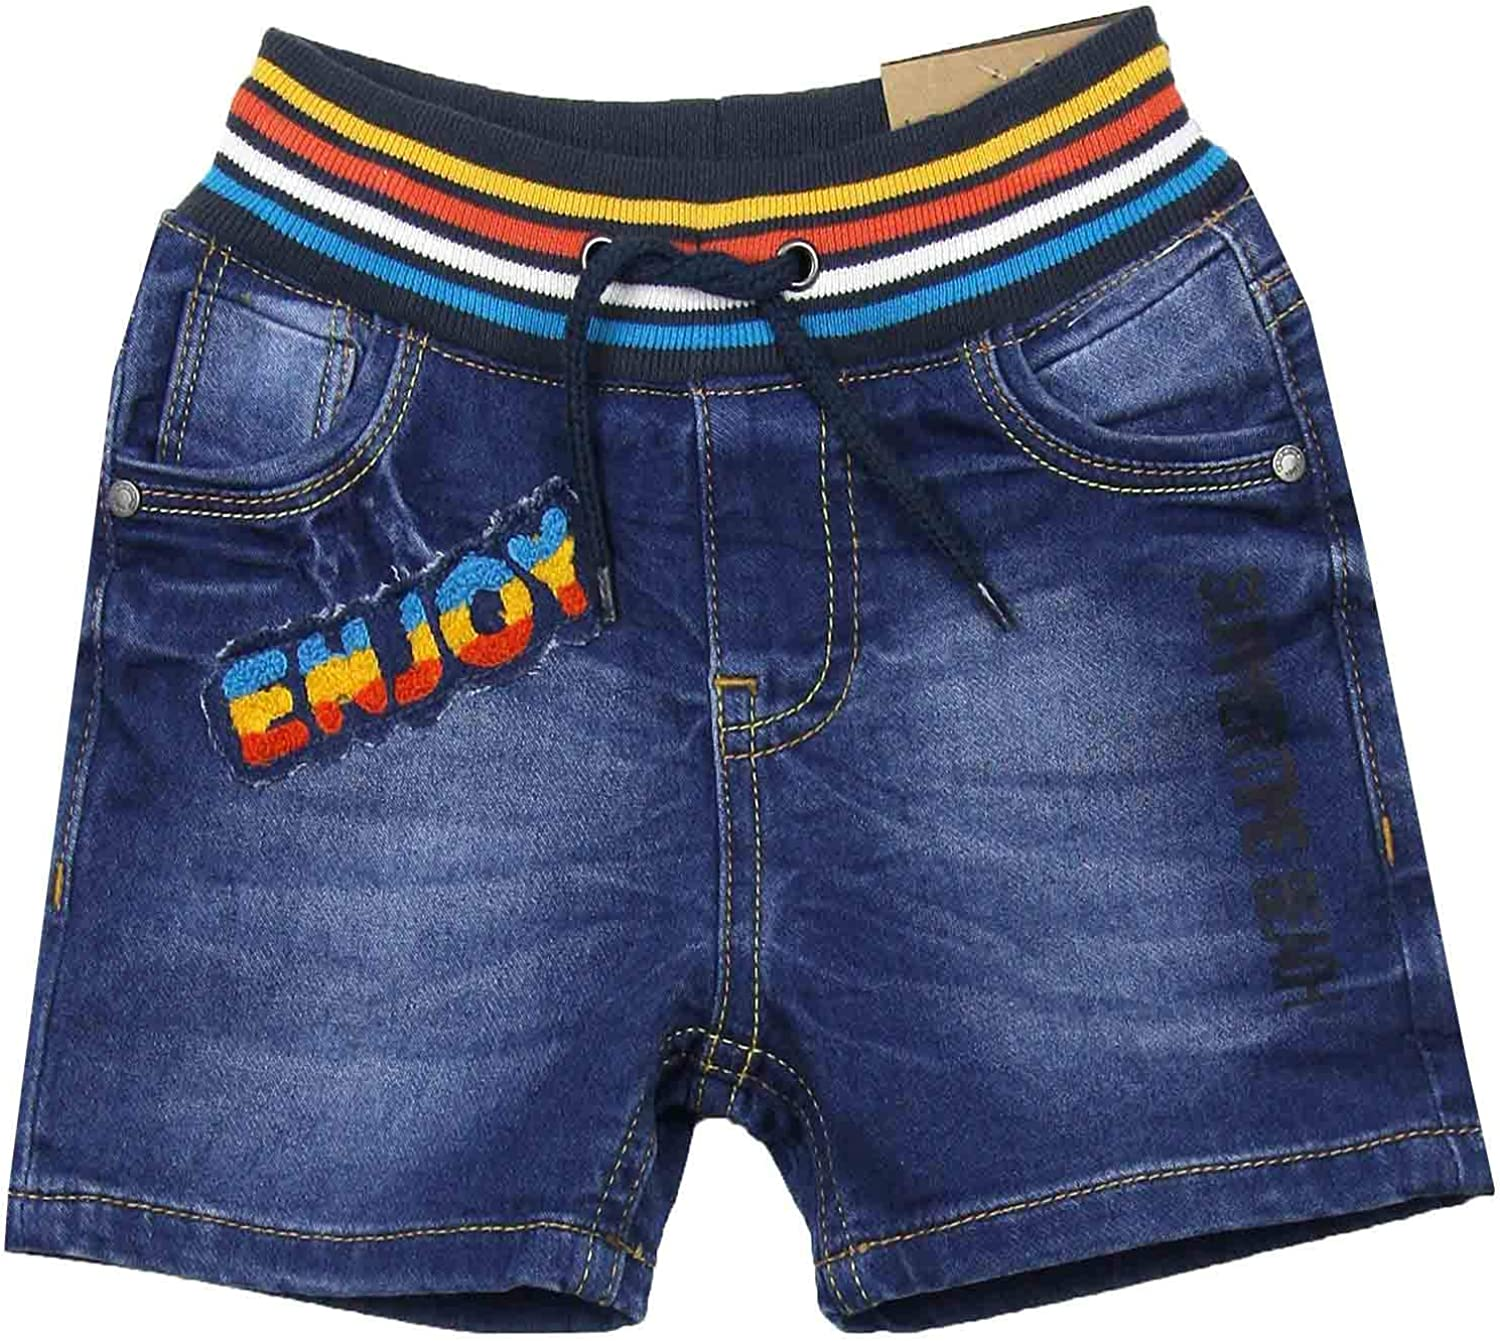 Losan Boys Jogg Jean Shorts with Striped Waistband, Sizes 2-7